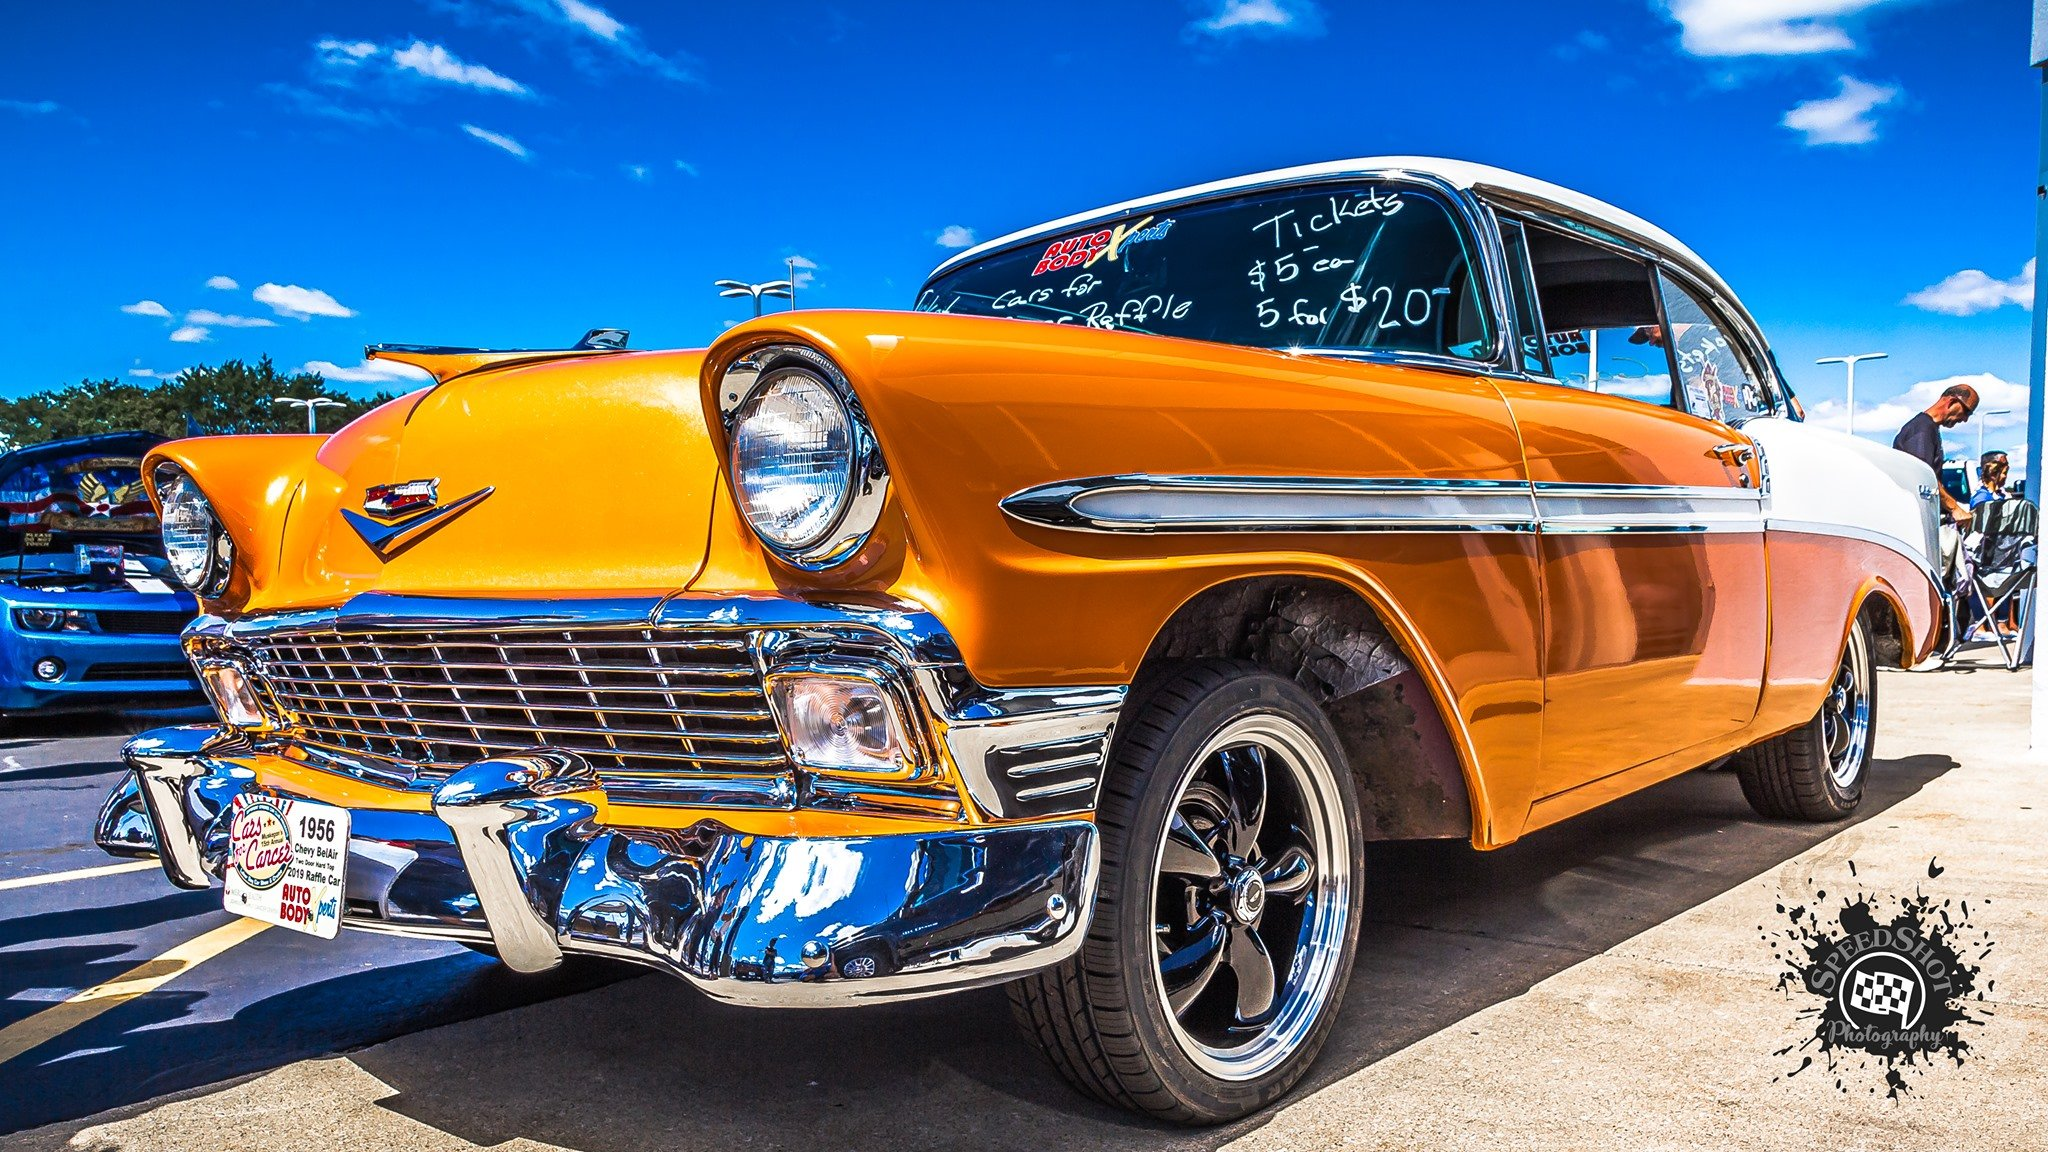 15th annual Cars for Cancer to feature car show, cruise